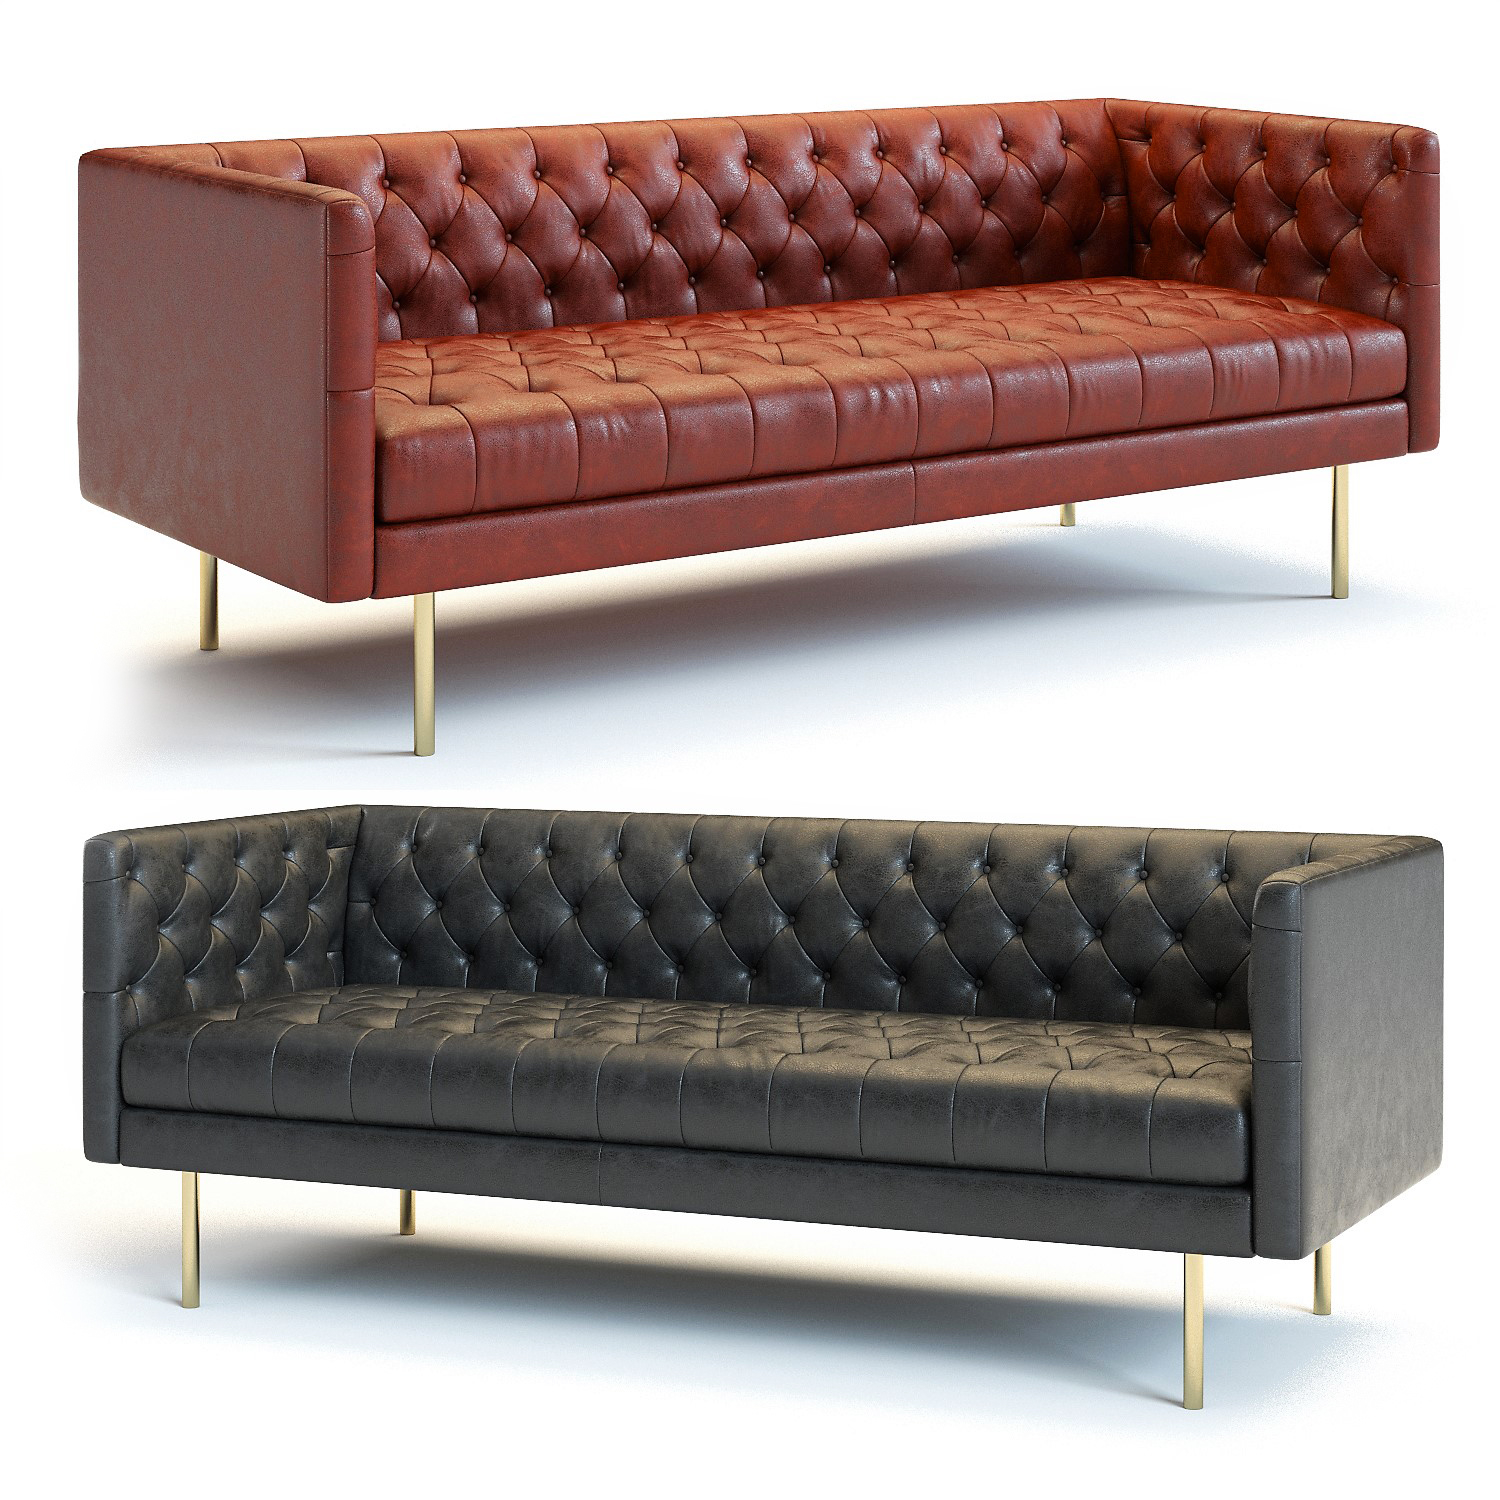 Wondrous West Elm Modern Chesterfield Sofa Gmtry Best Dining Table And Chair Ideas Images Gmtryco